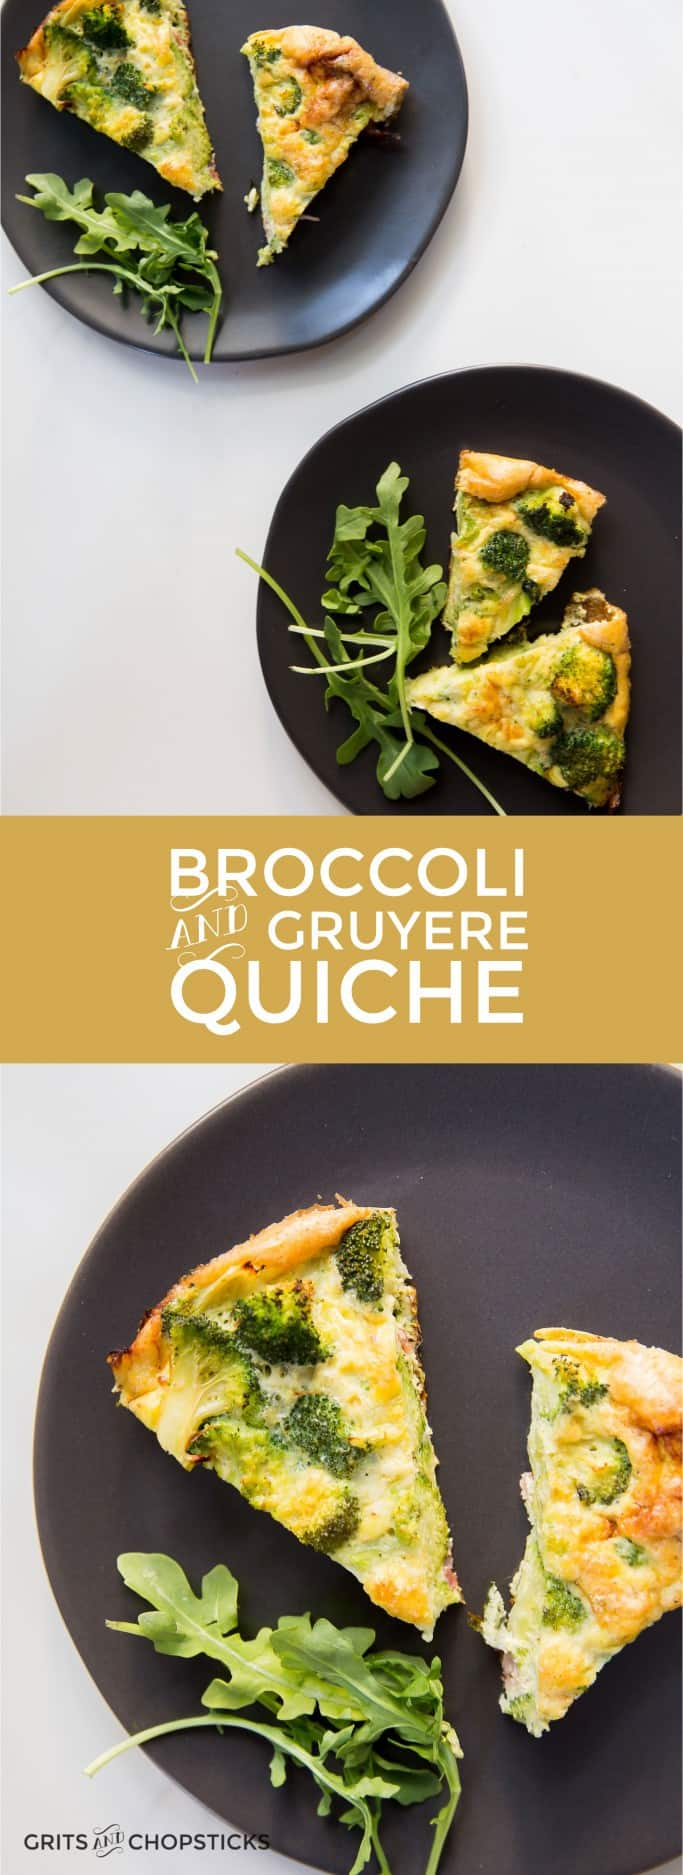 This broccoli and Gruyere quiche is a great, easy one-dish meal for Meatless Monday!